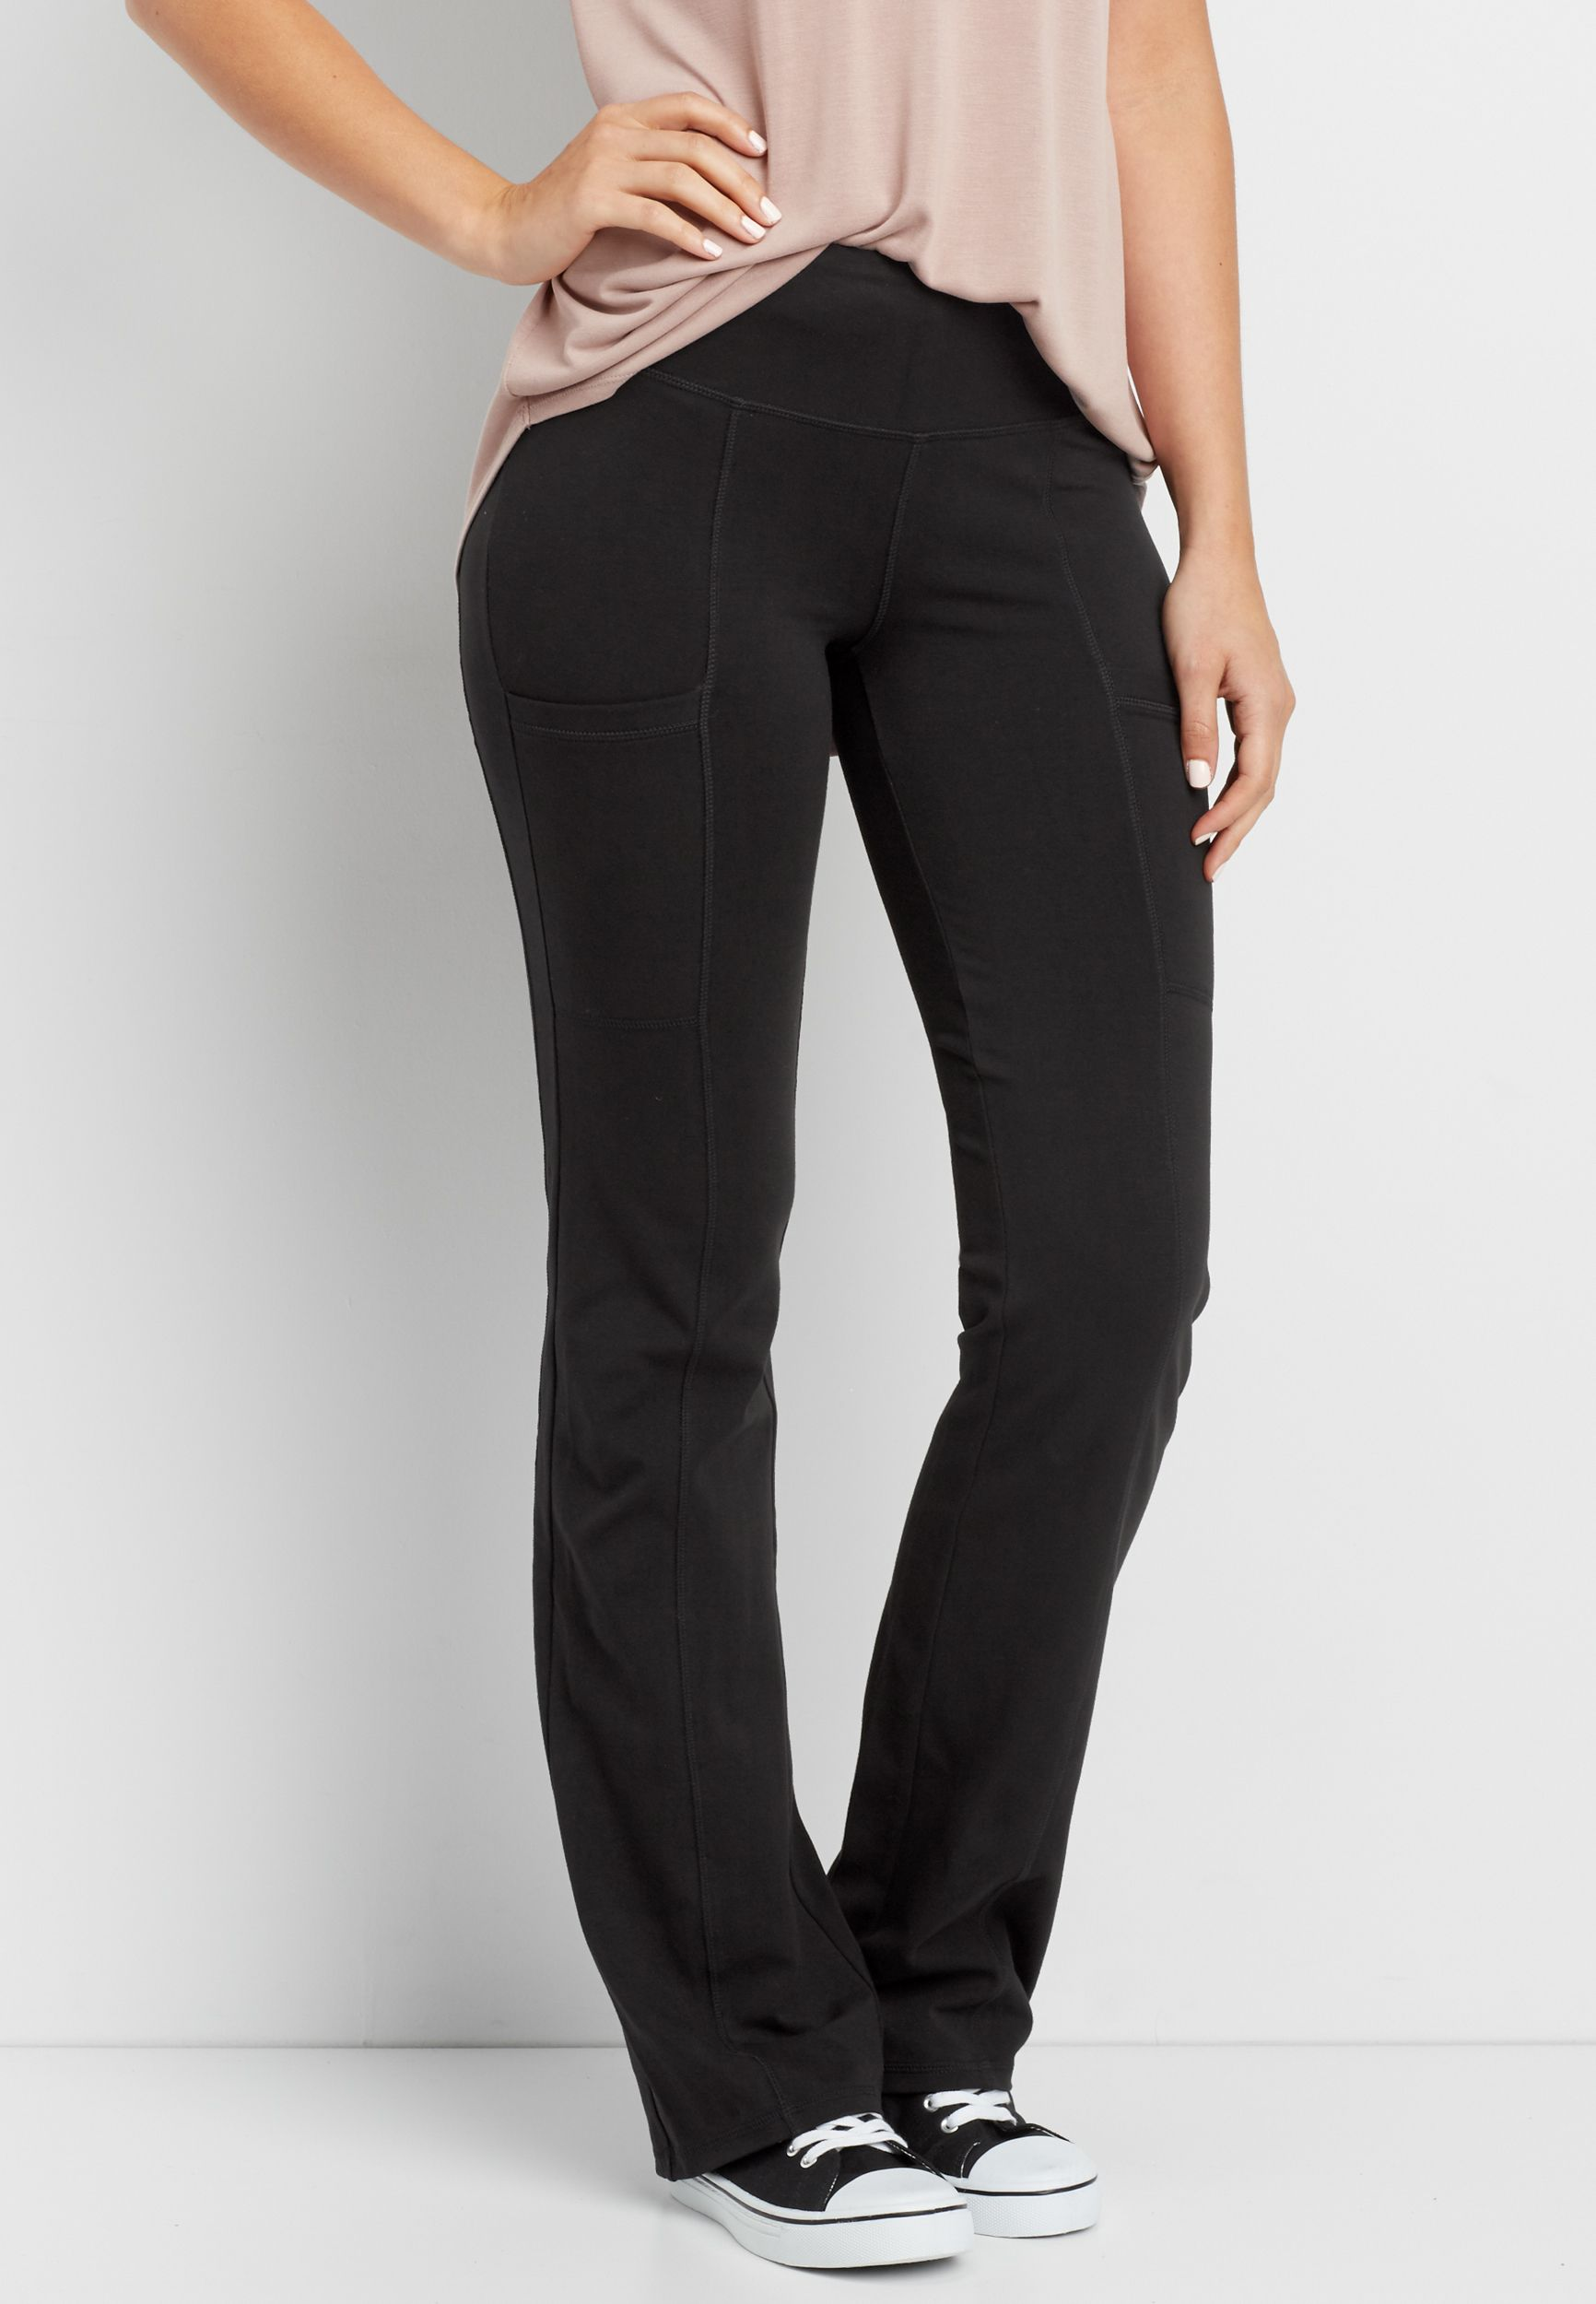 Bootcut Yoga Pant With Side Pockets Original Price 29 00 Available At Maurices Yoga Pants Clothes Bootcut [ 2500 x 1732 Pixel ]